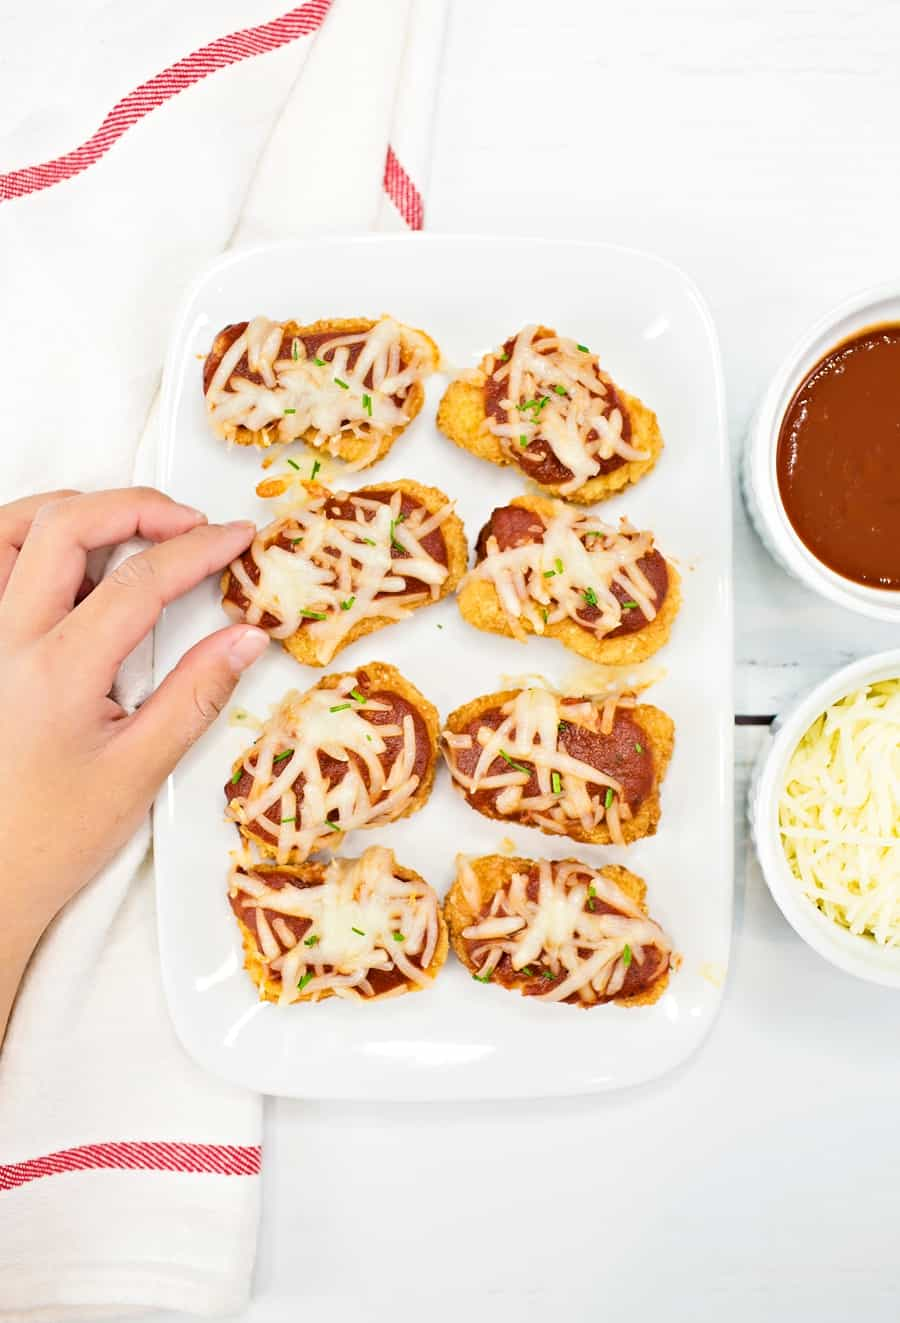 Serve up these crowd-pleasing easy chicken parmesan bites for a lunch or dinner that will get two-thumbs up from the whole family.